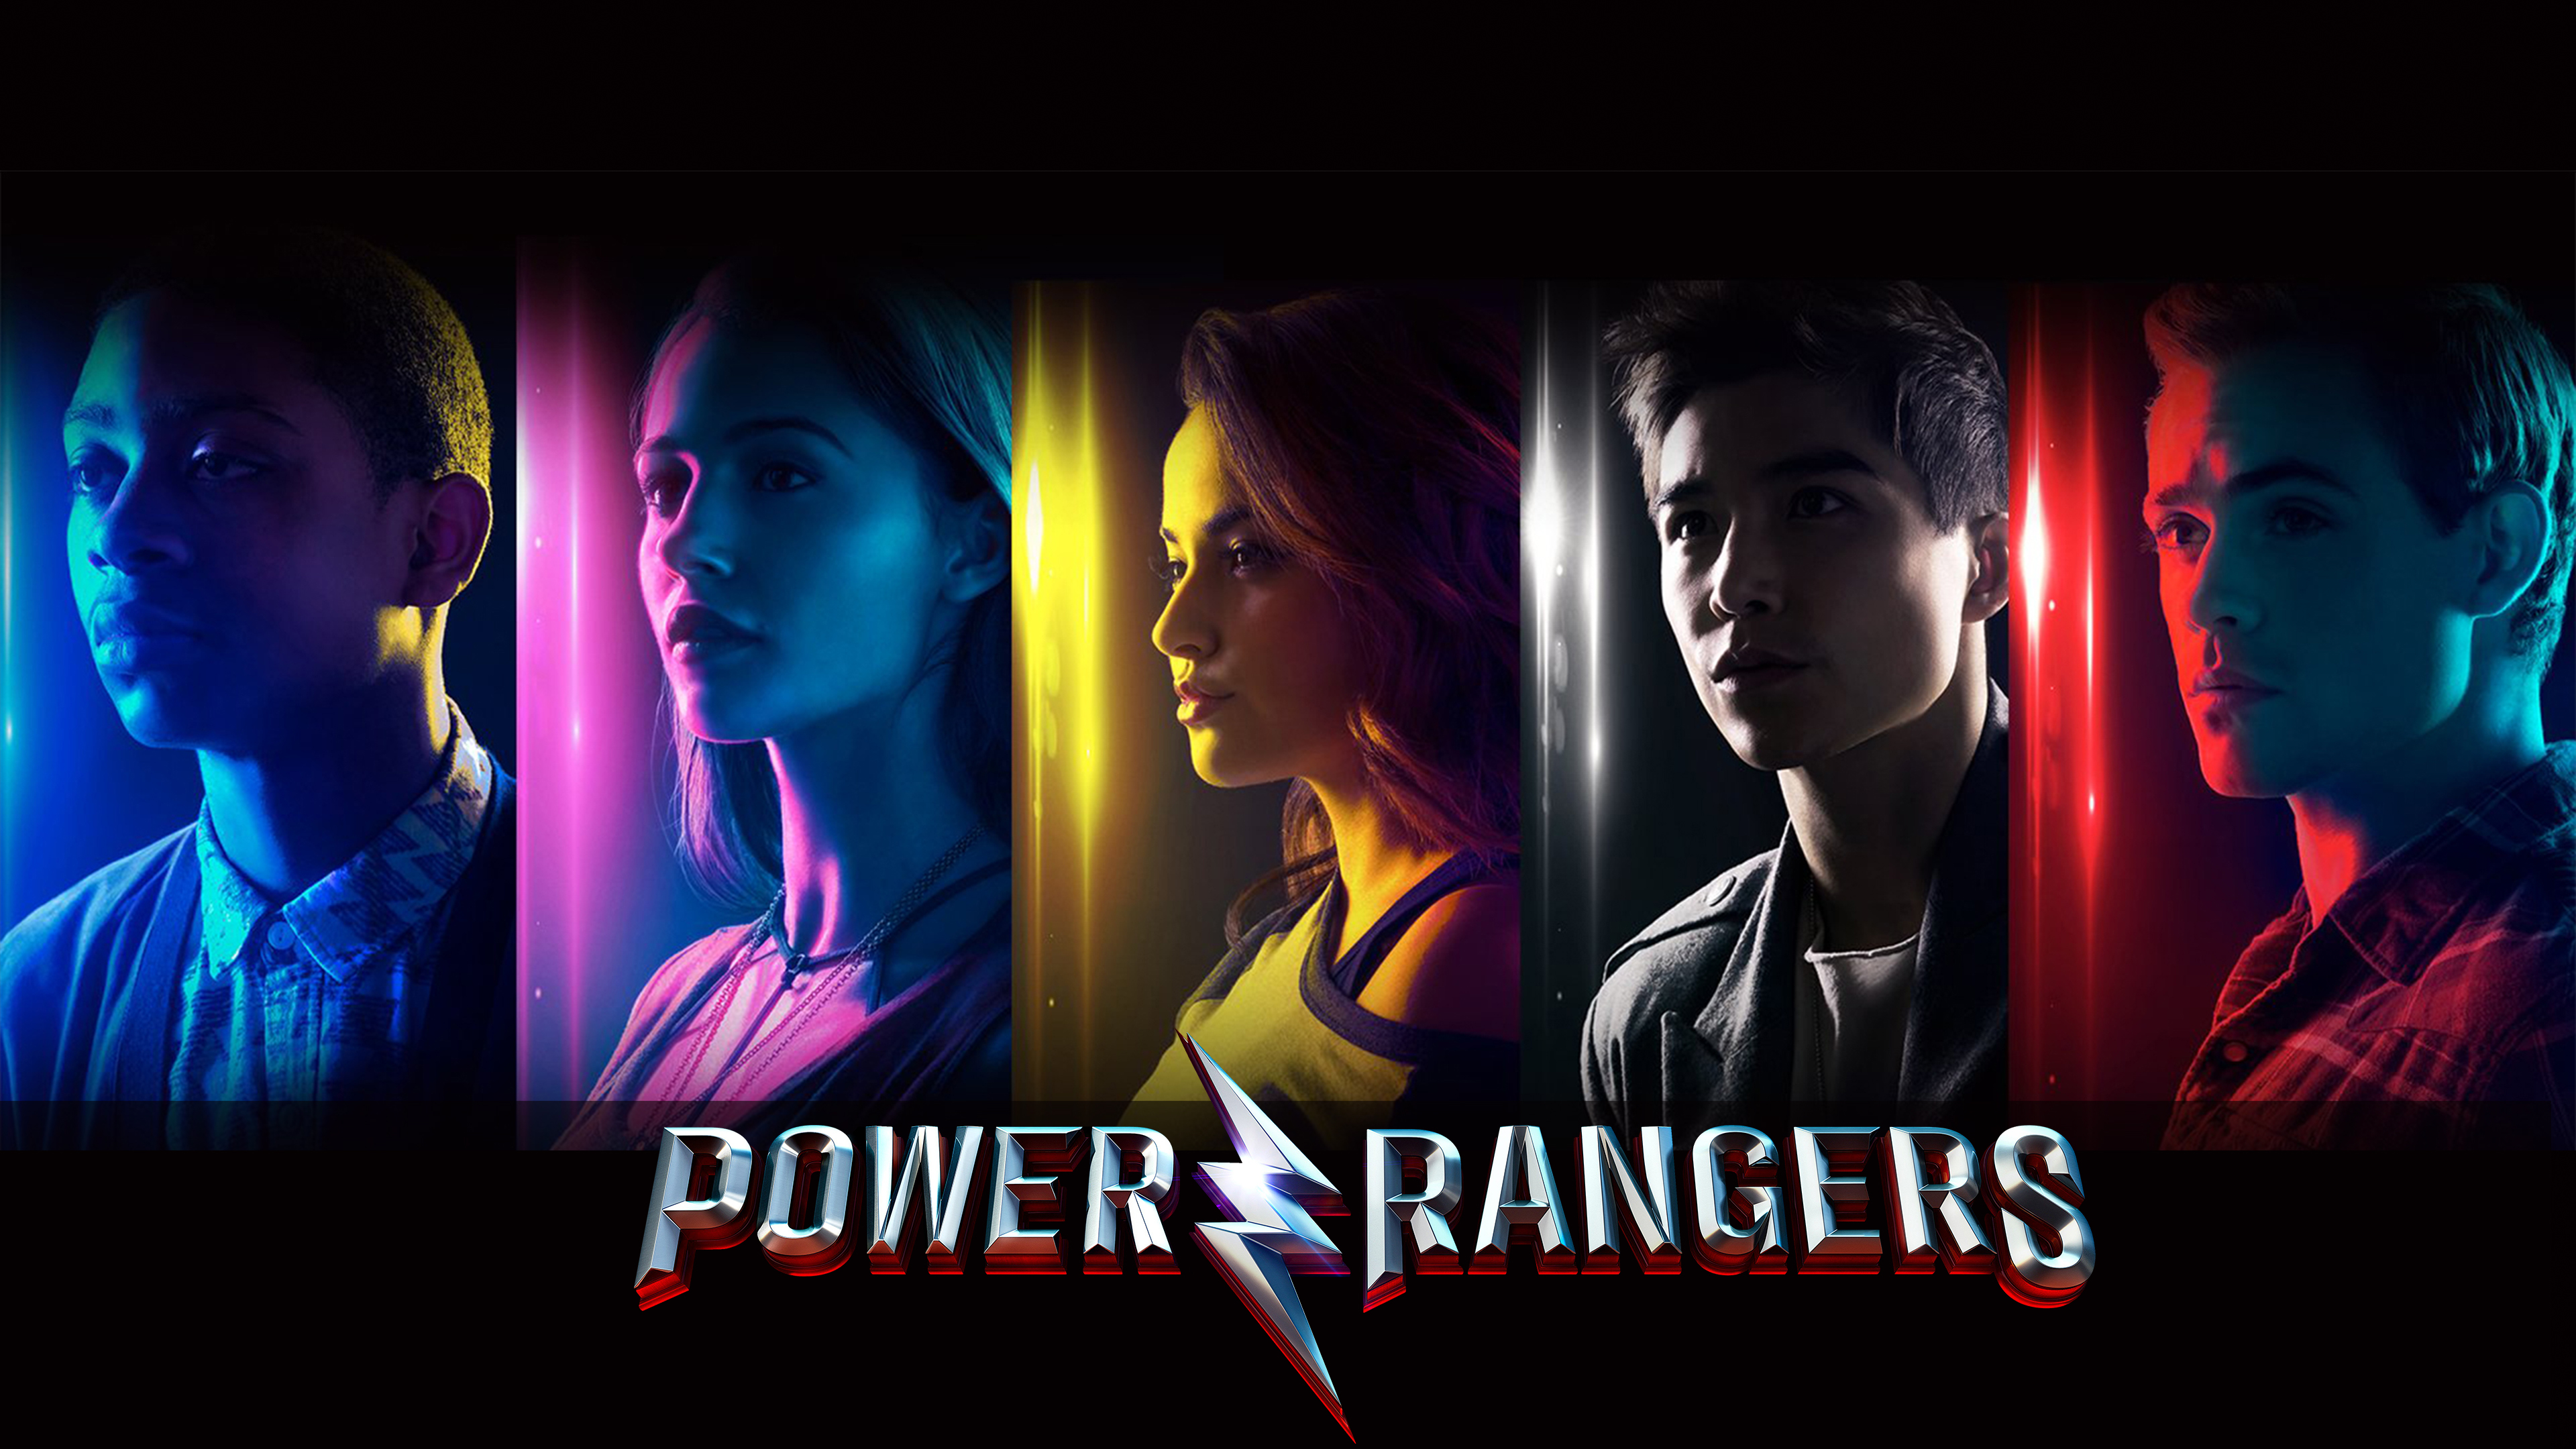 50 Power Rangers 2017 HD Wallpapers Background Images 3840x2160